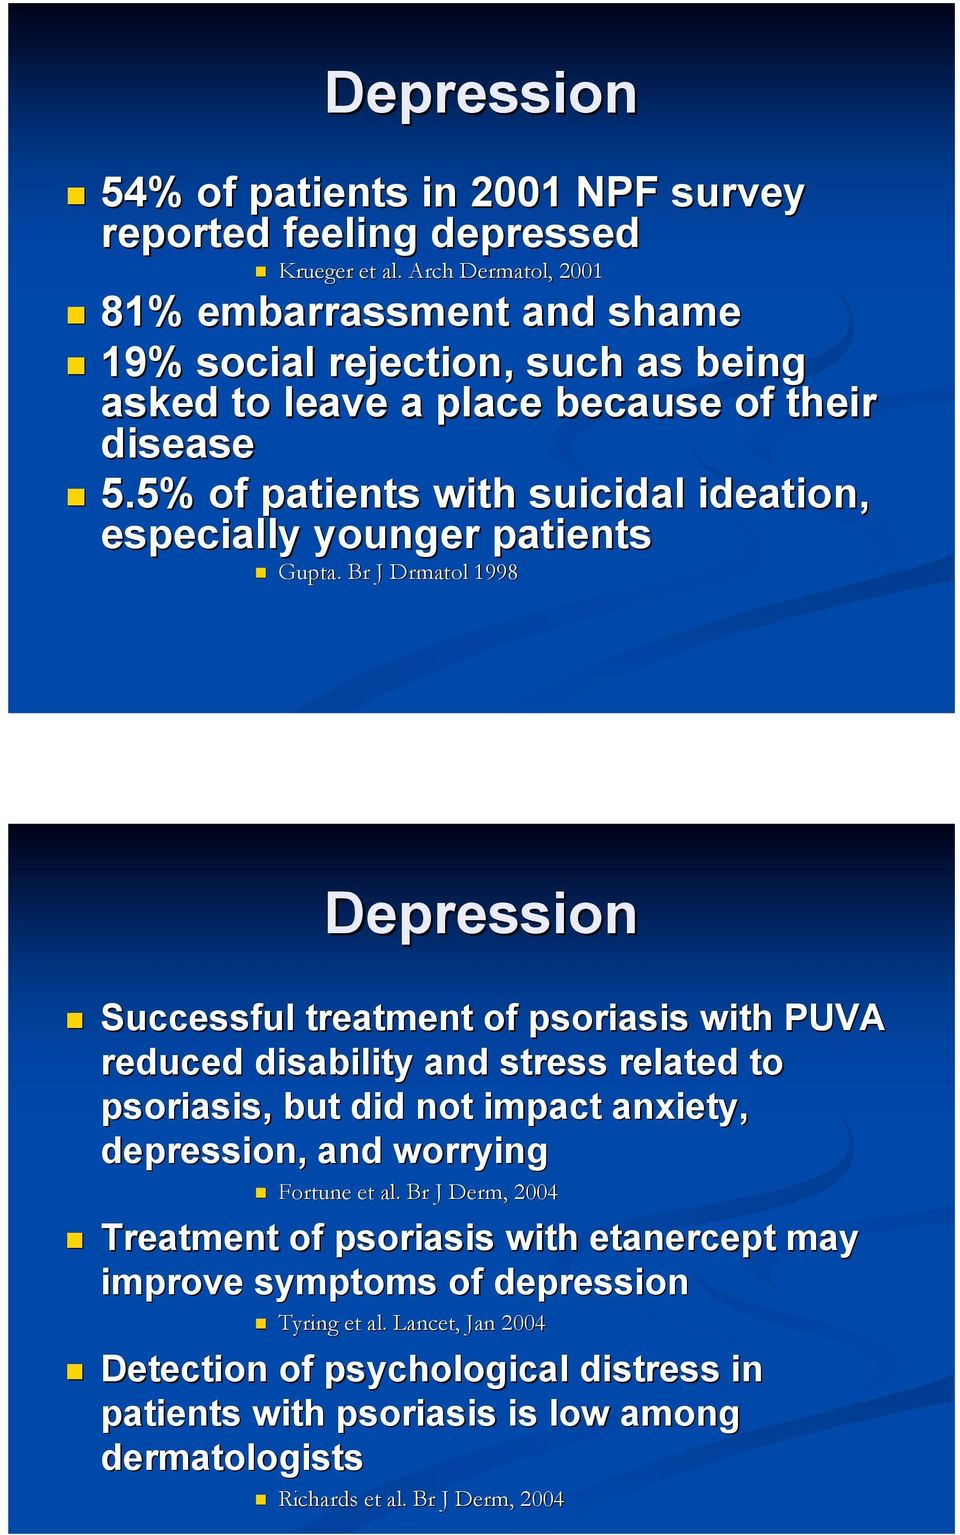 Br J Drmatol 1998 Depression! Successful treatment of psoriasis with PUVA reduced disability and stress related to psoriasis, but did not impact anxiety, depression, and worrying!